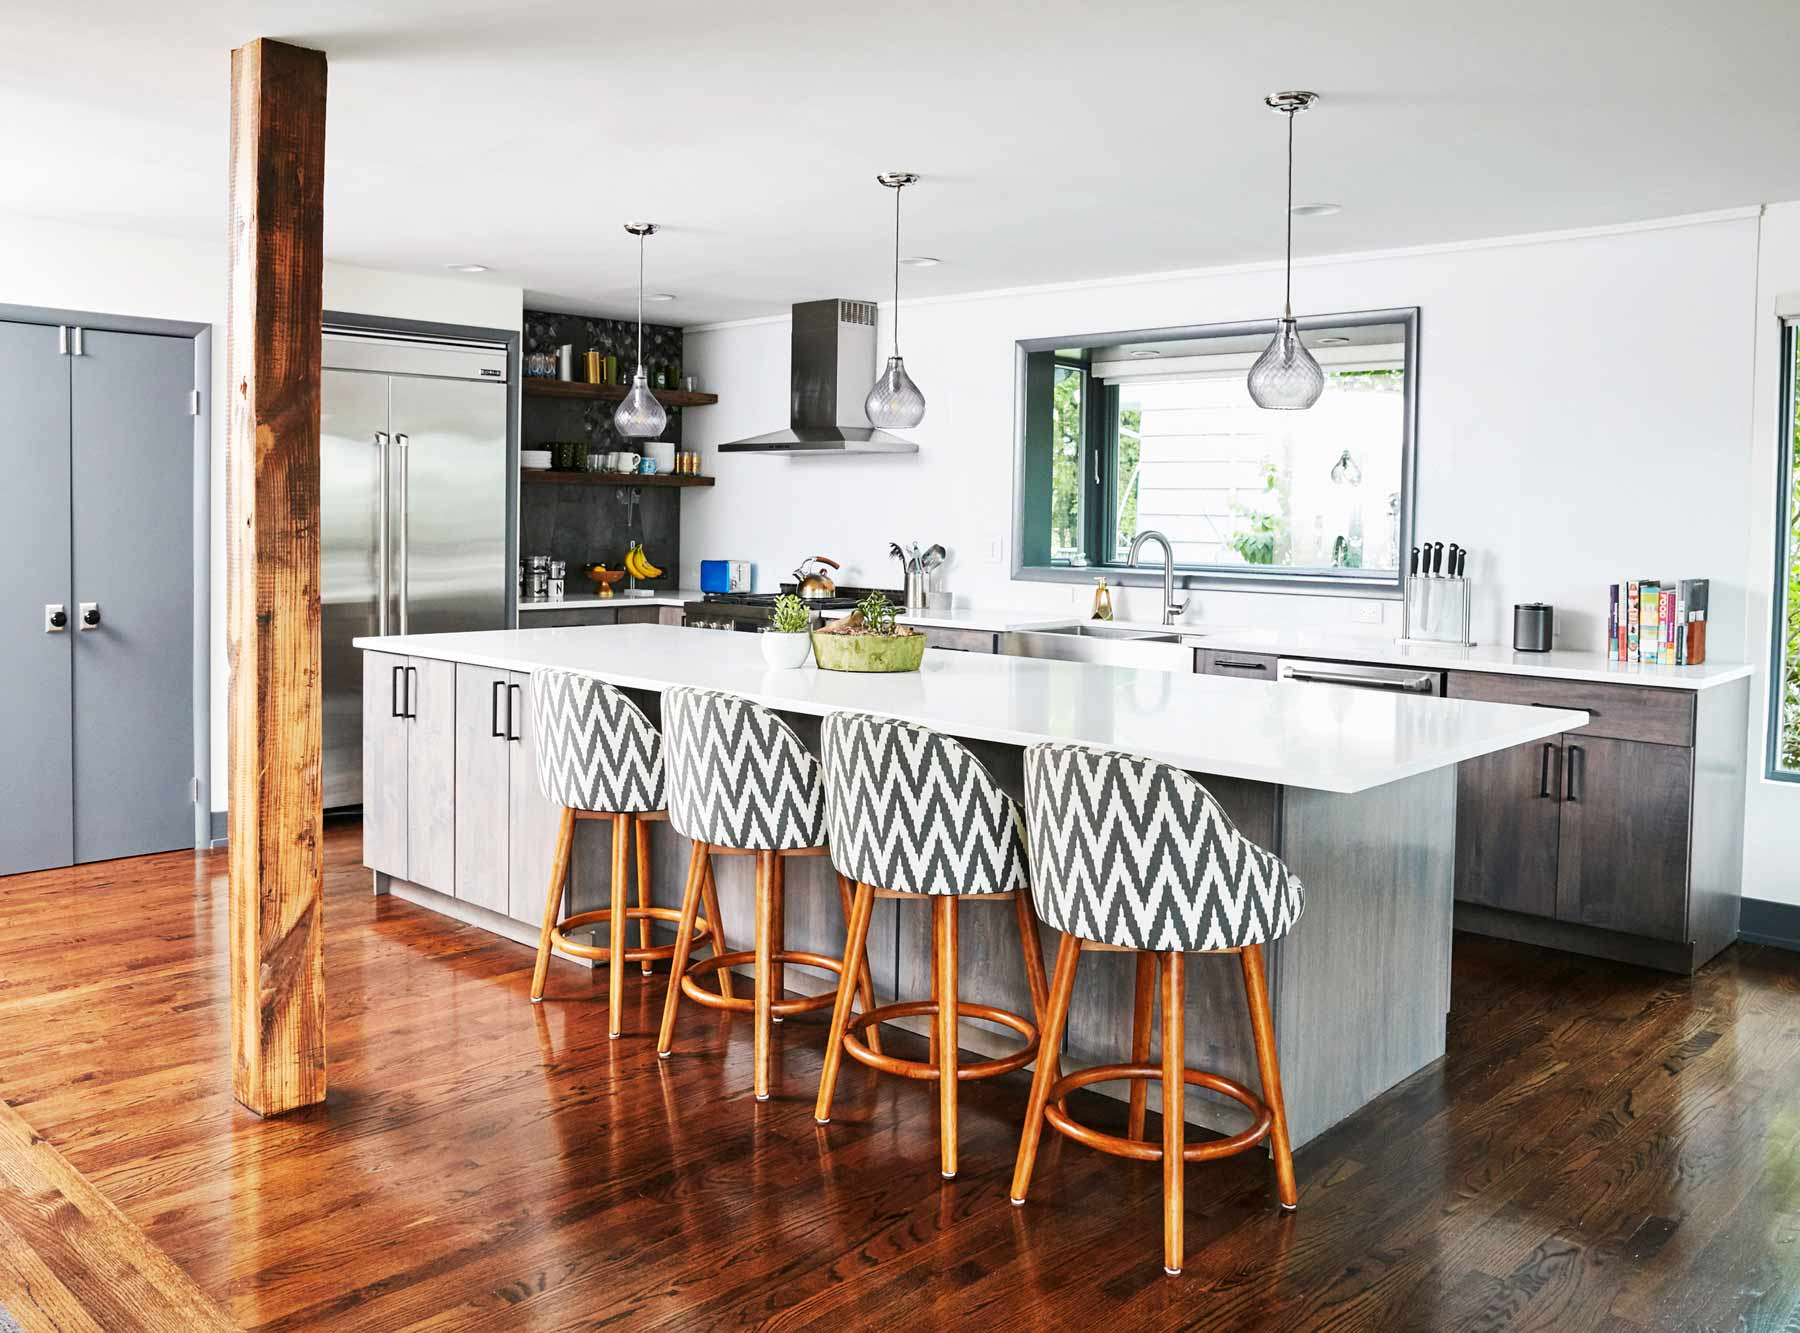 Nureed Saeed's renovated remodeled Kitchen Island in her South Orange NJ mid century modern home